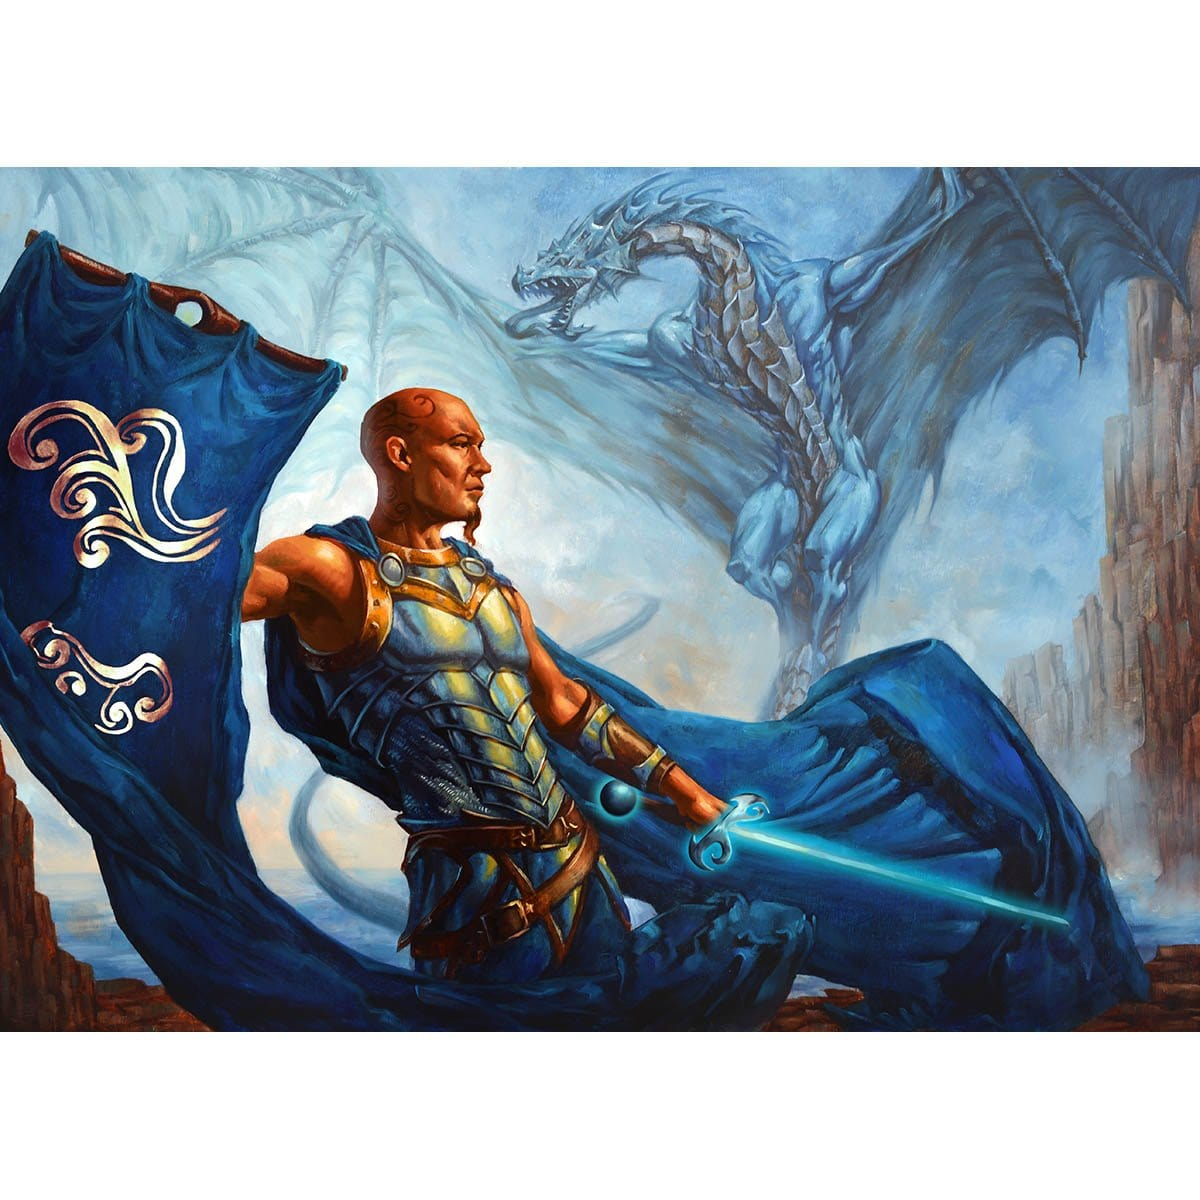 Paragon of the Gathering Mists Print - Print - Original Magic Art - Accessories for Magic the Gathering and other card games